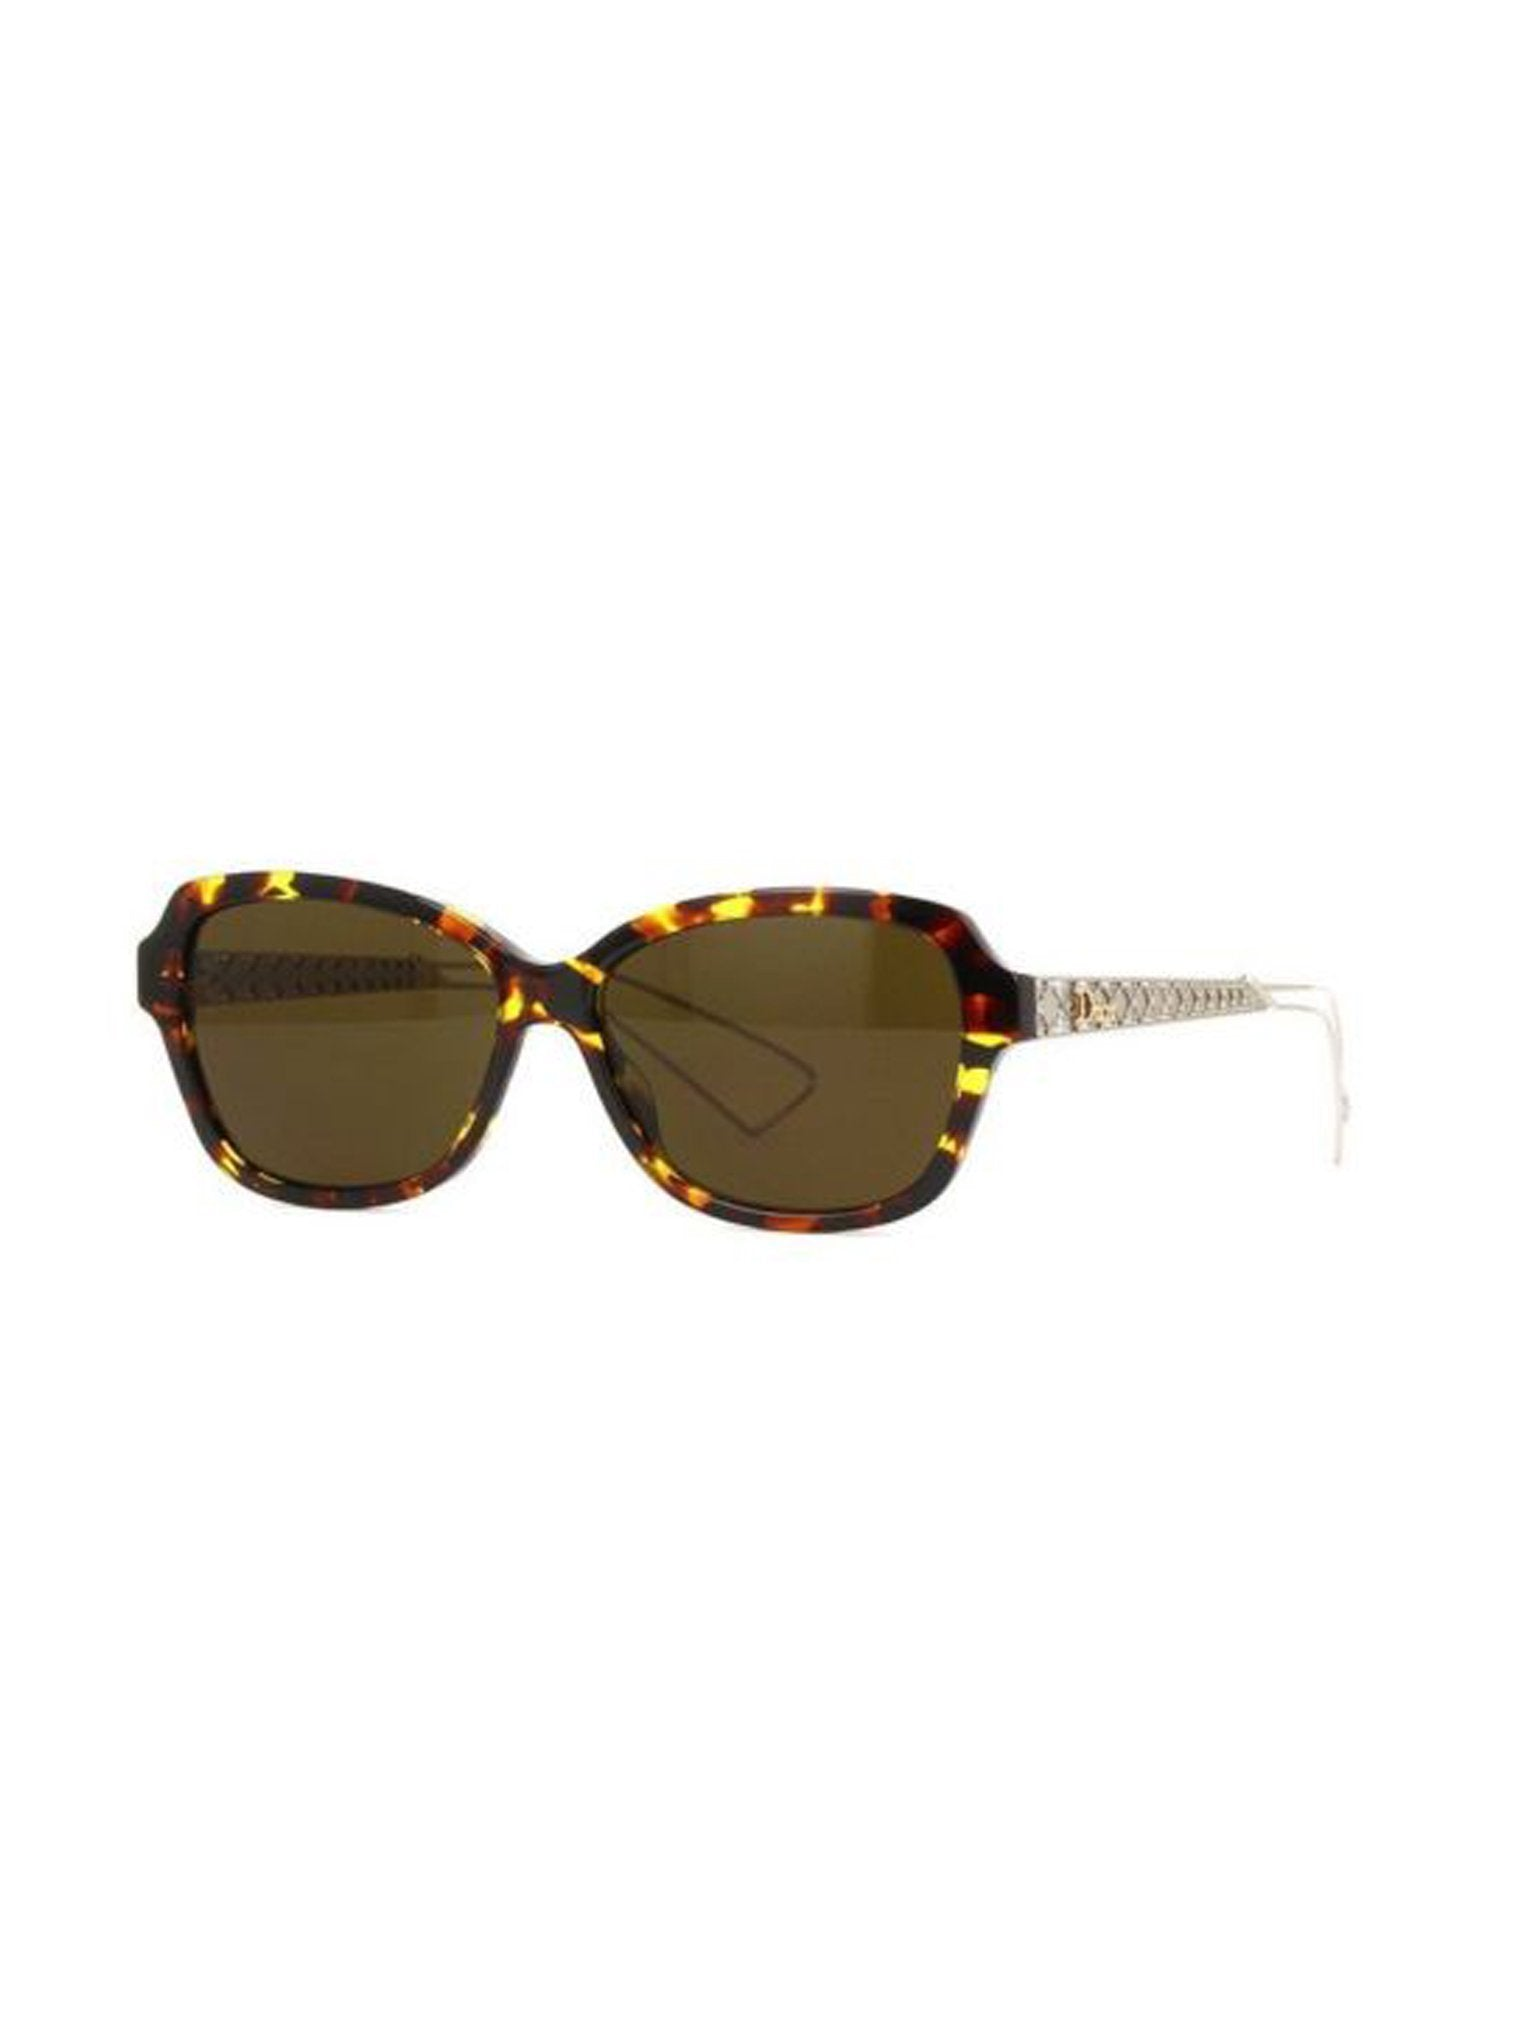 7a9d4a0d4671b Dior - Ama5N Wayfarer Sunglasses - Dark Havana   Brown - ForwardModa